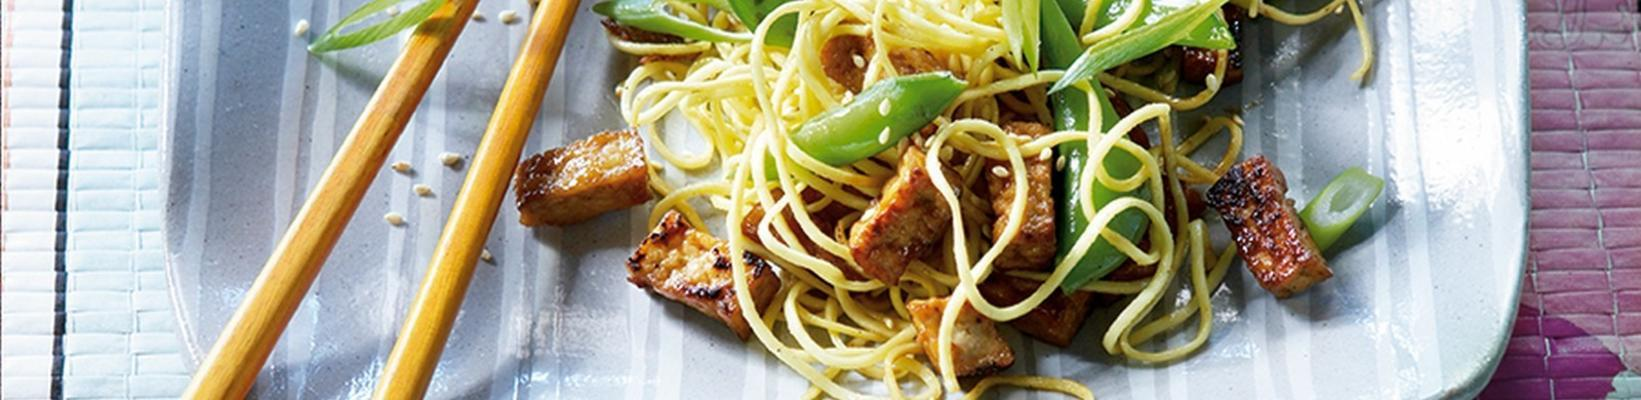 fried noodles with sugarsnaps and spicy tofu